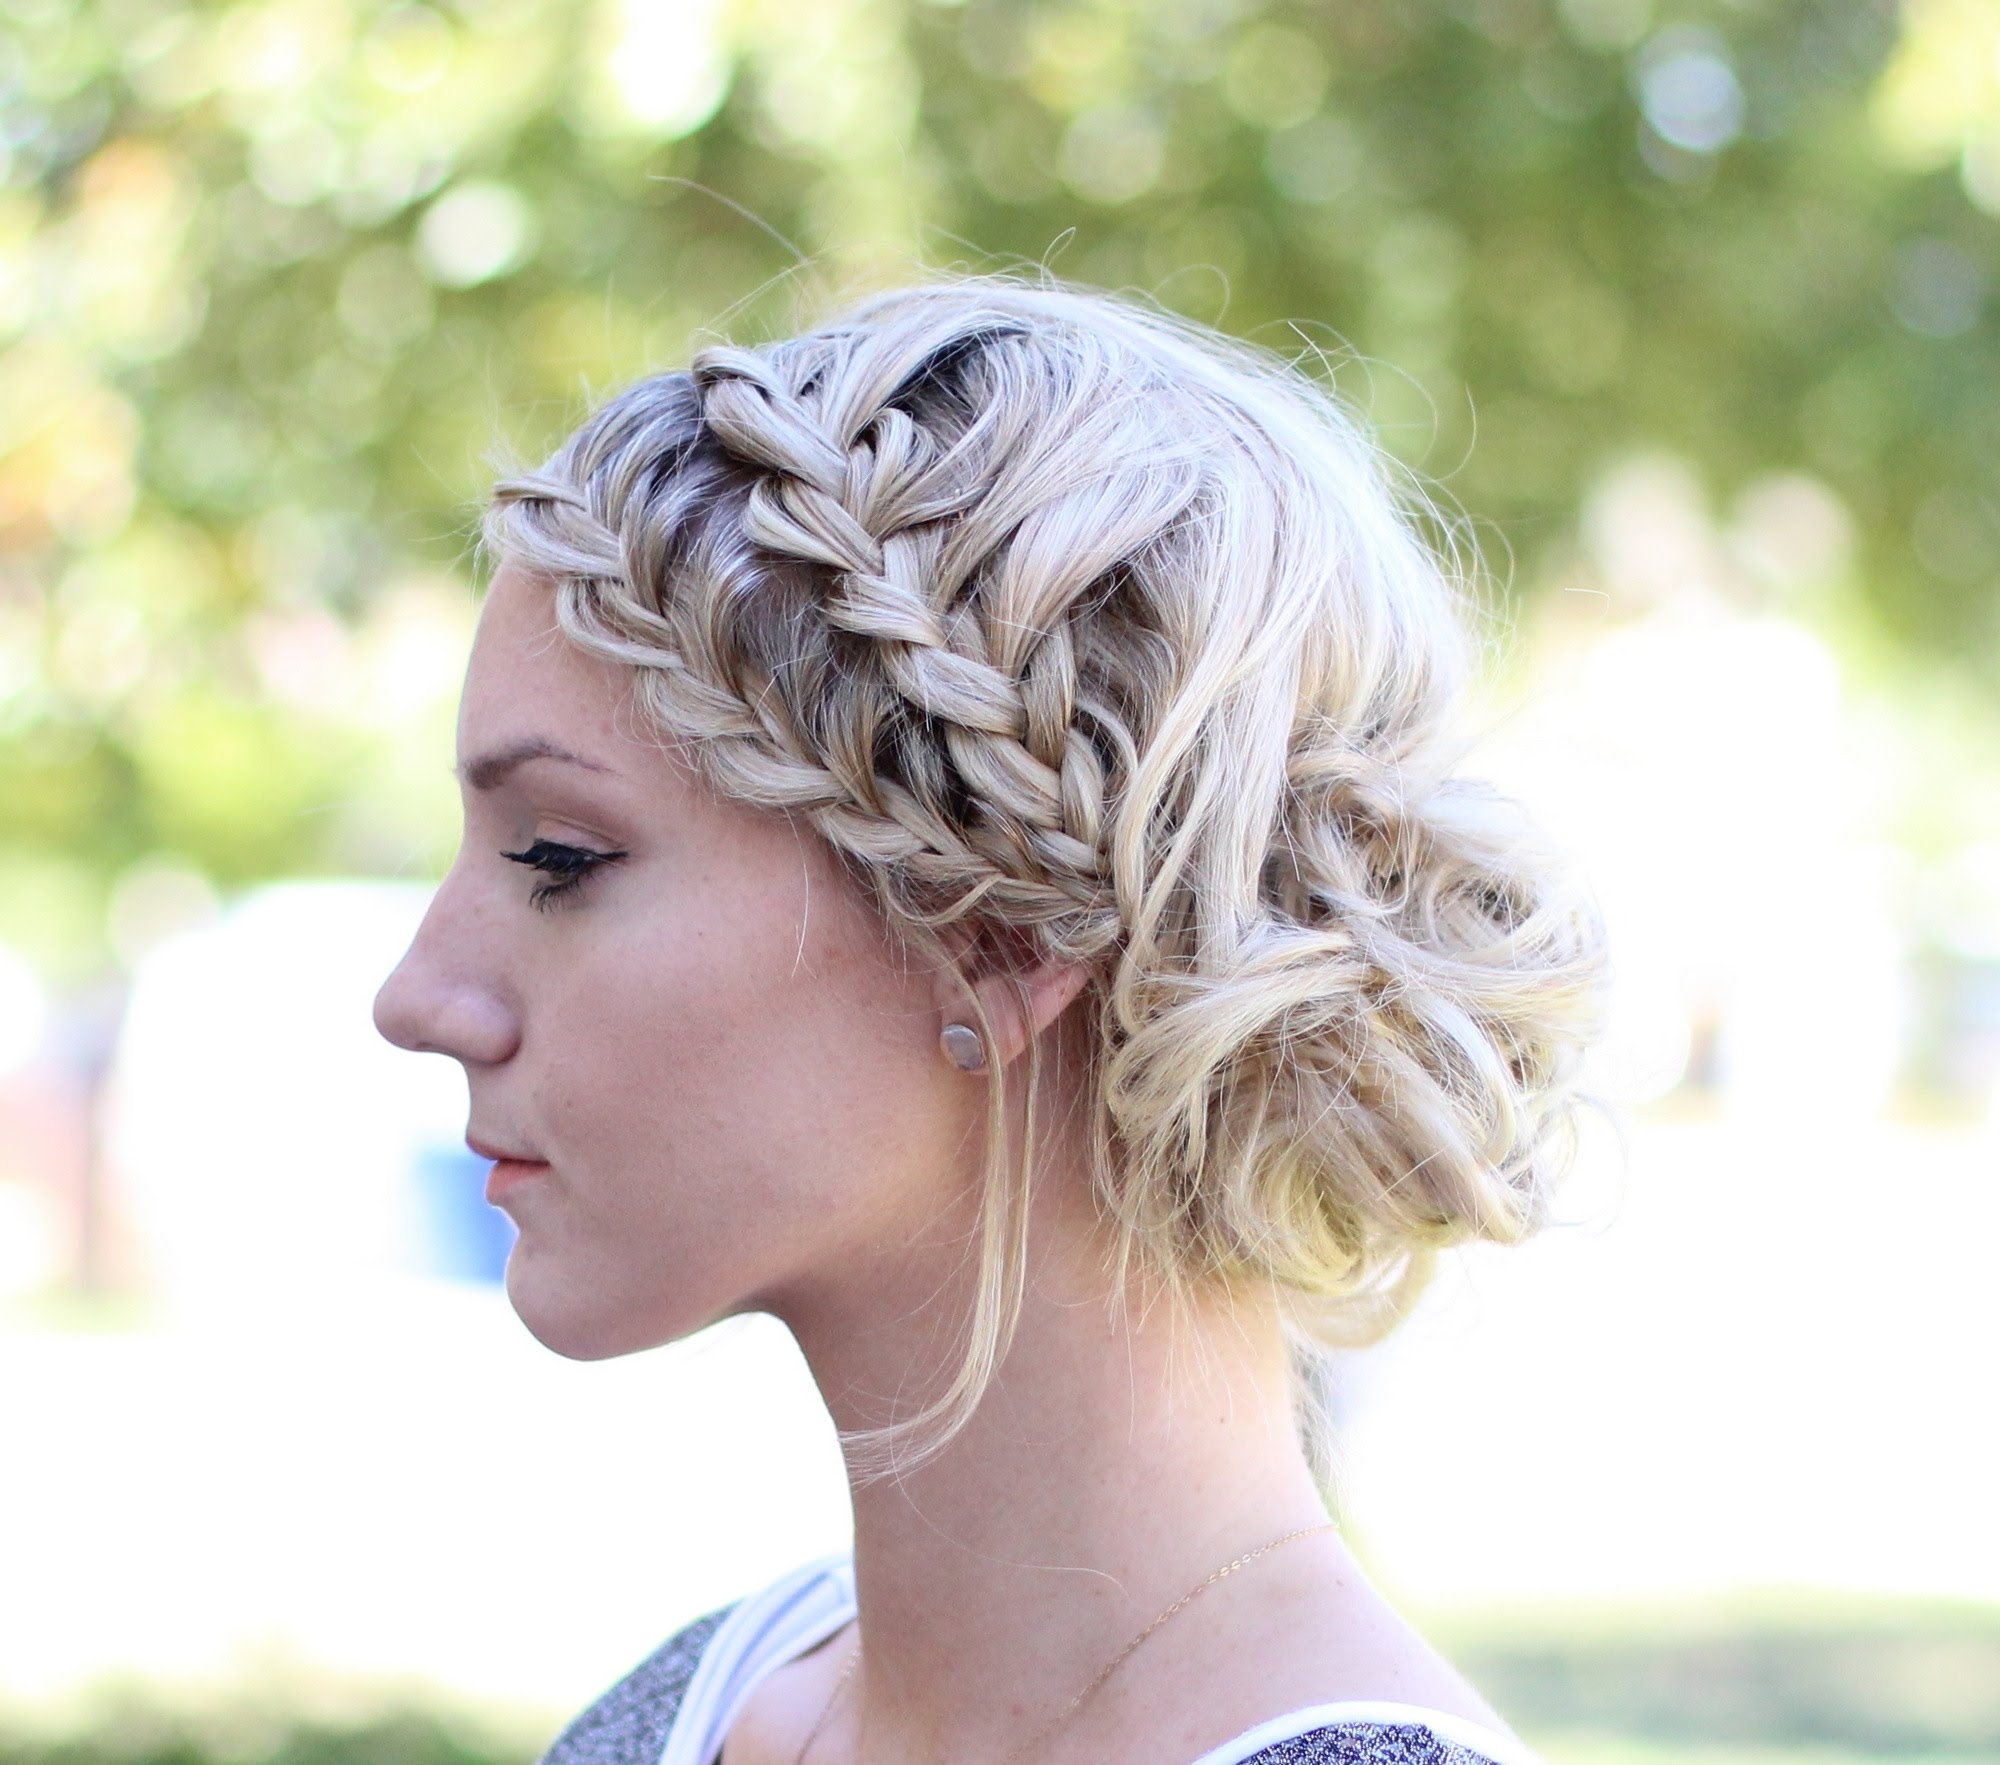 How To: Double French Lace Braids Into A Messy Bun – Youtube Within Well Liked Messy Bun With French Braids (View 9 of 15)